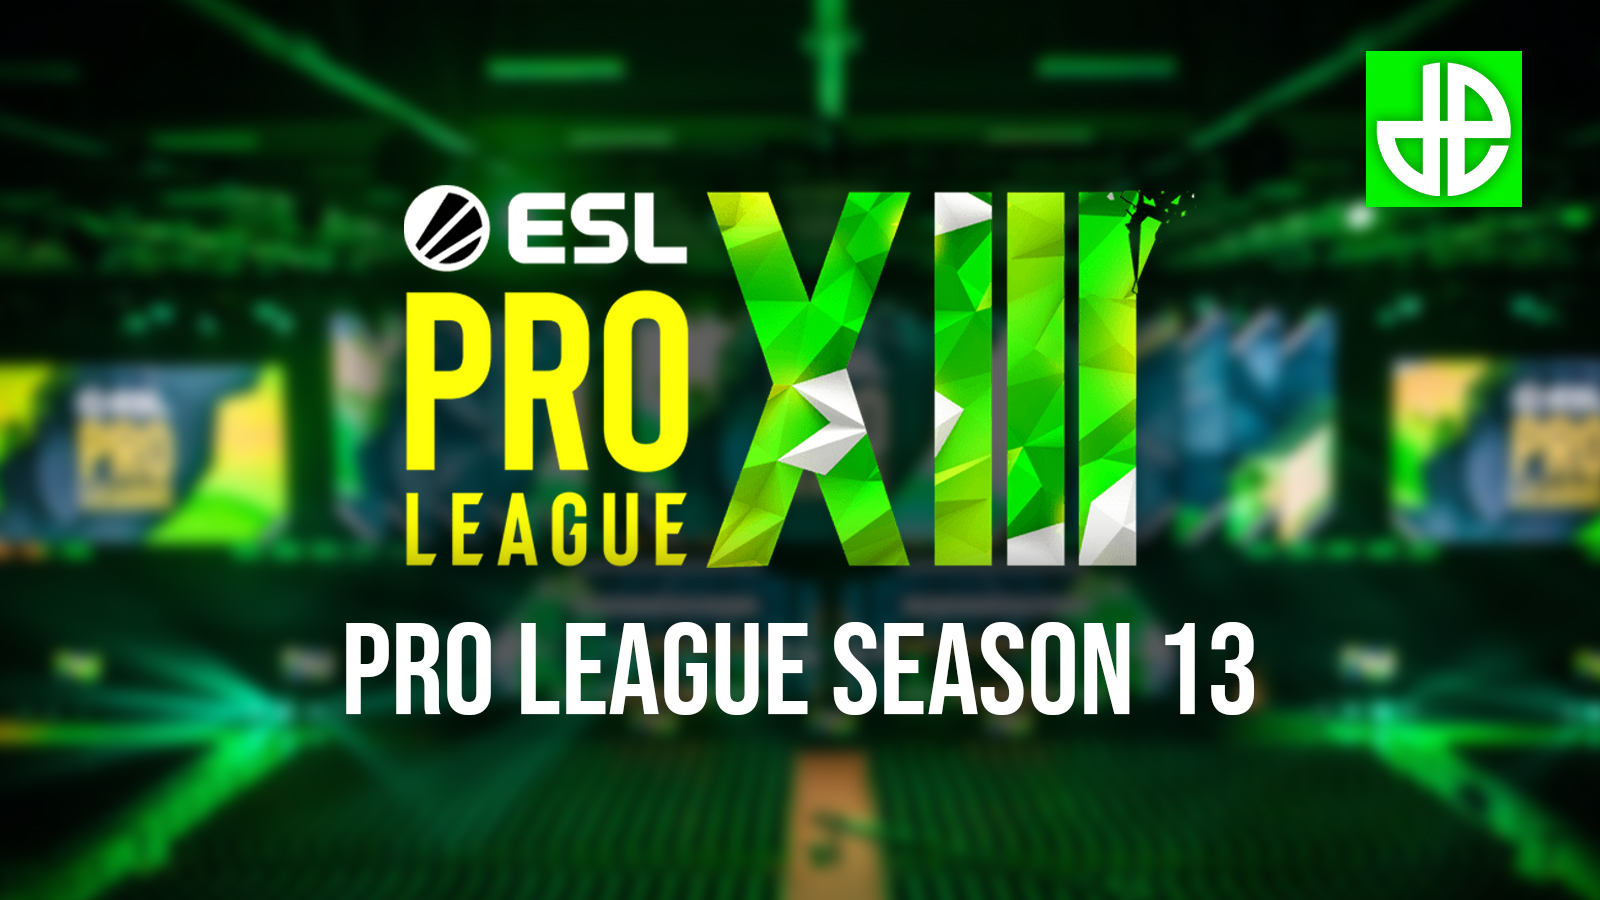 ESL Pro League Season 13 header